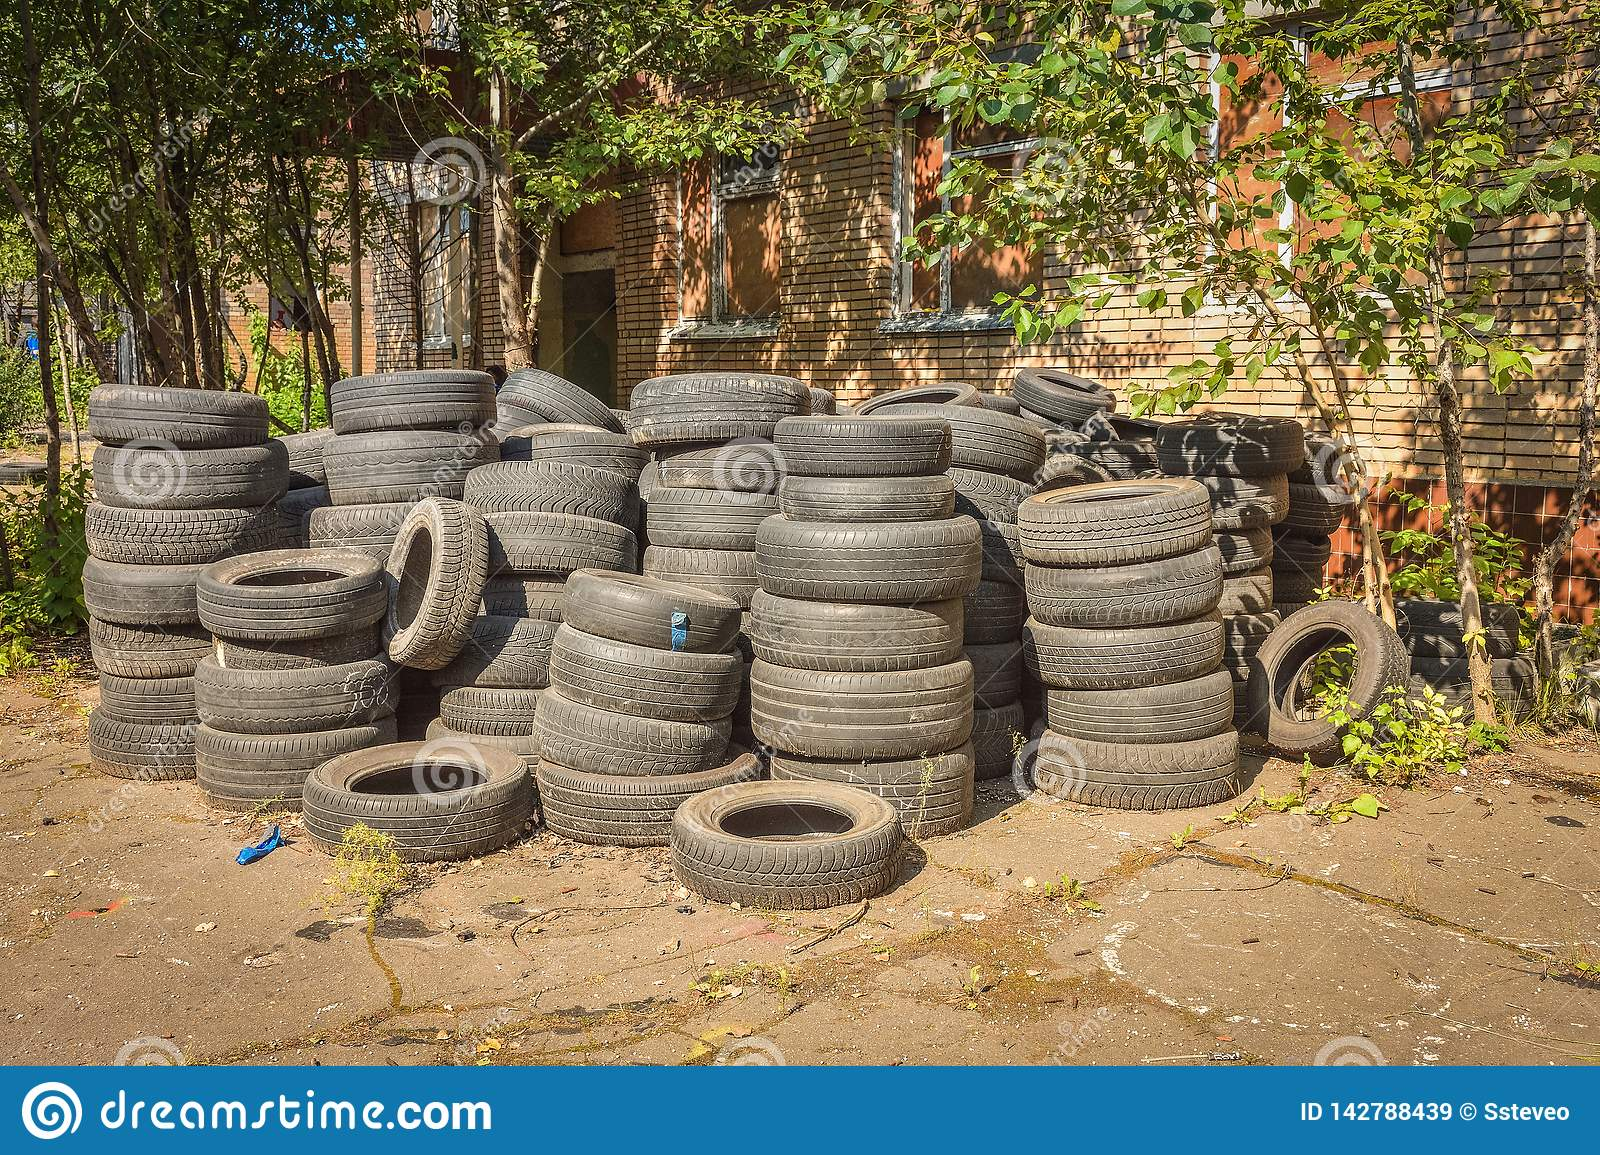 Abandoned car tires